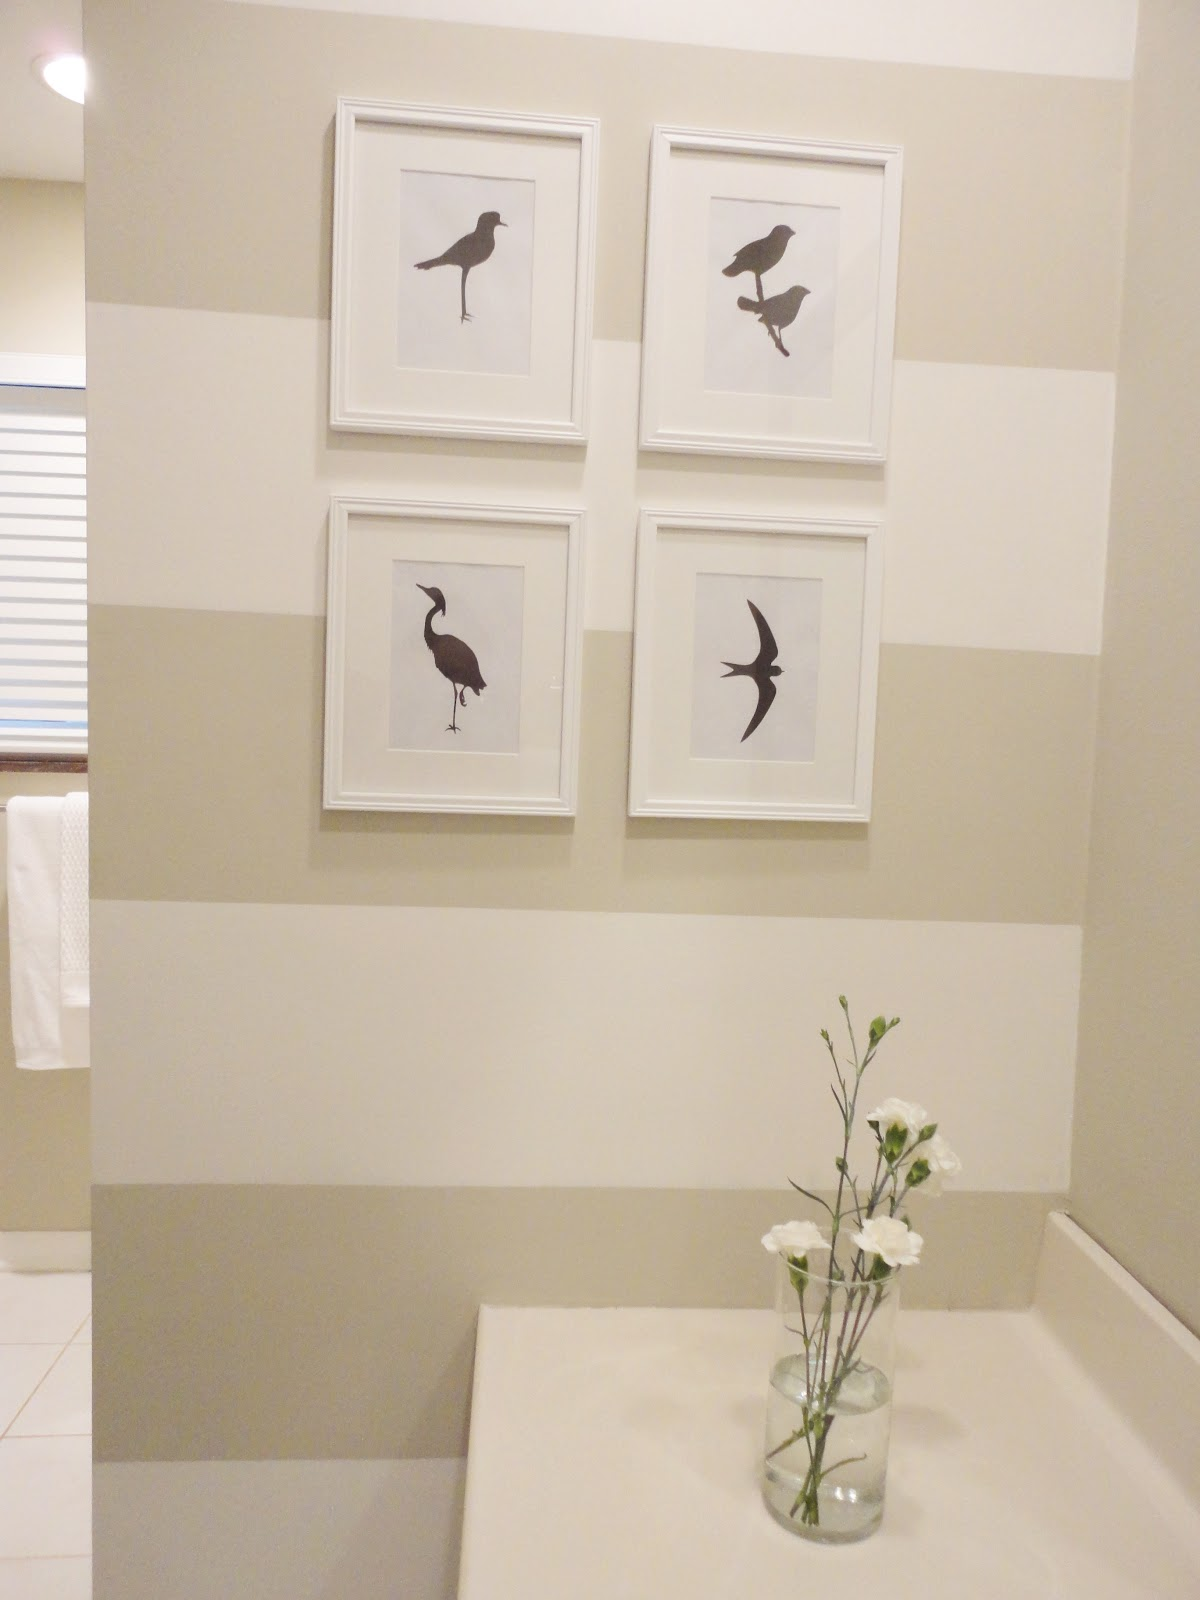 Livelovediy our guest bathroom makeover for Small bathroom wall art